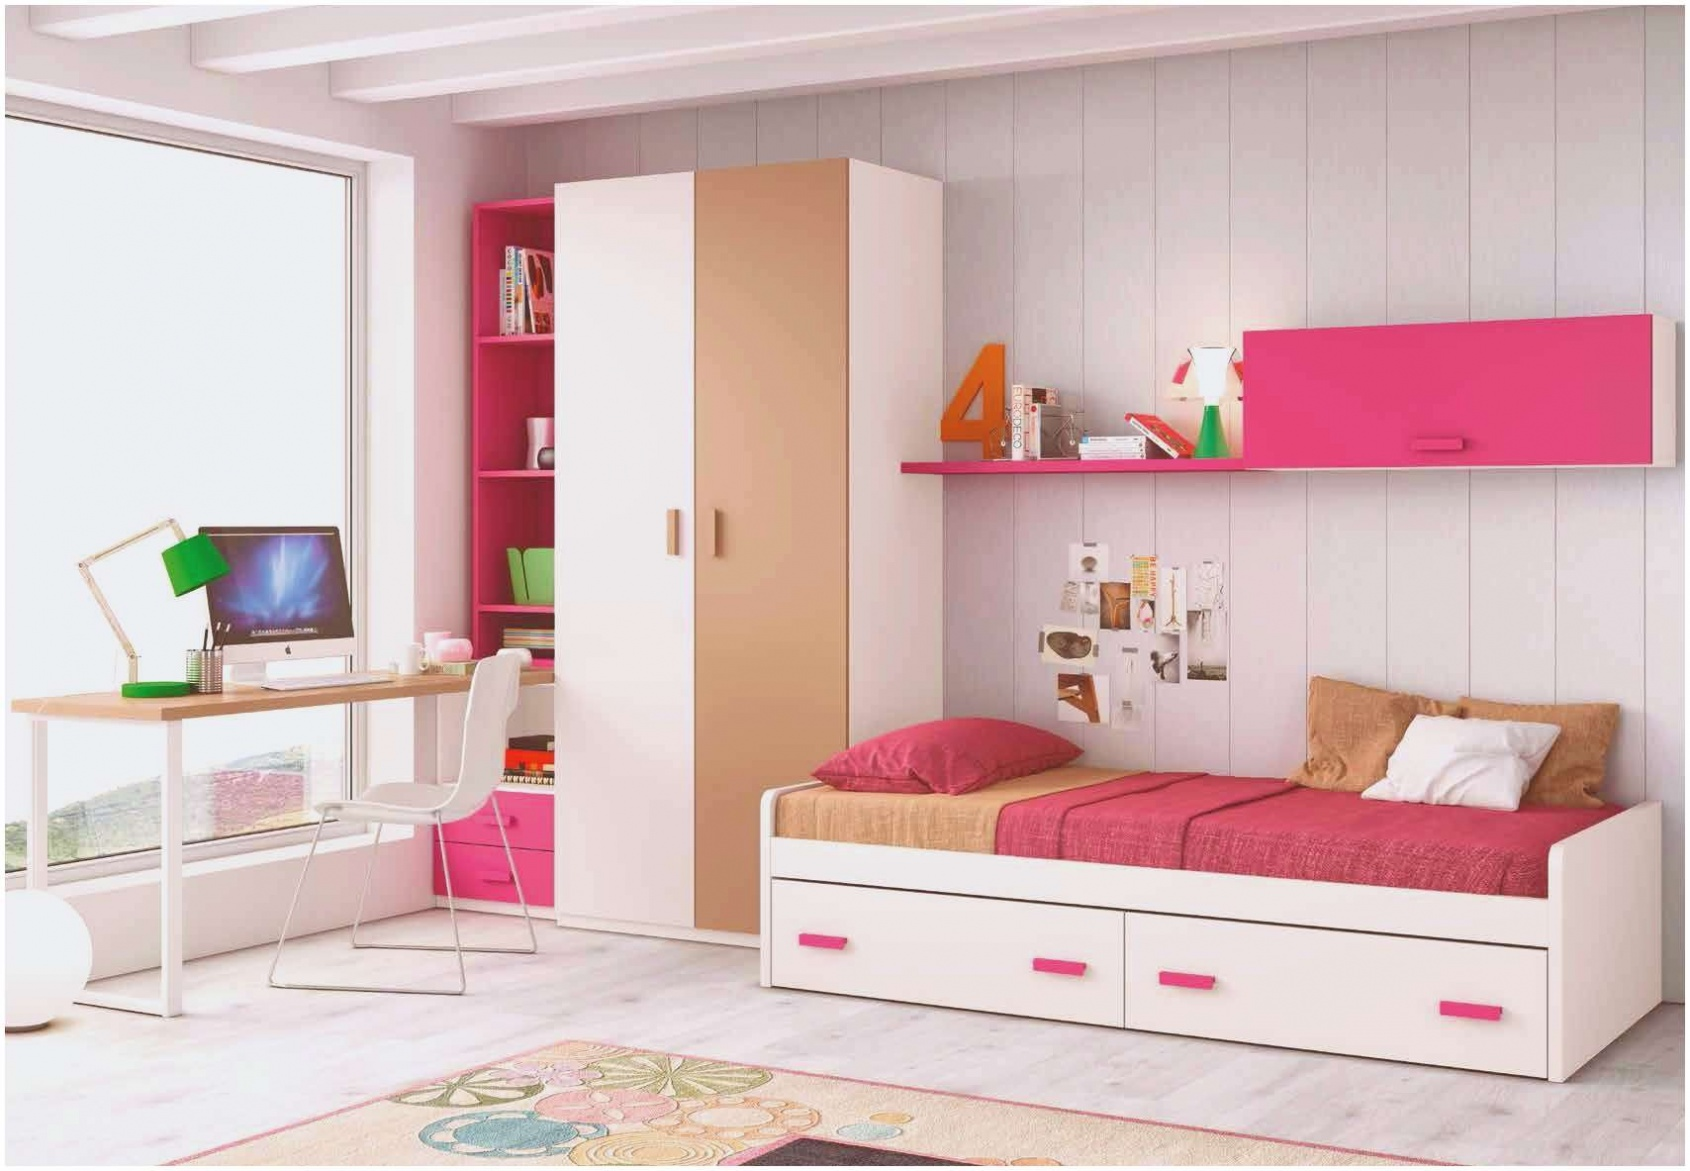 beau chaise connectee chambre bebe cdiscount new chambre b deco 17 idee chambre d ado fille of idee chambre d ado fille